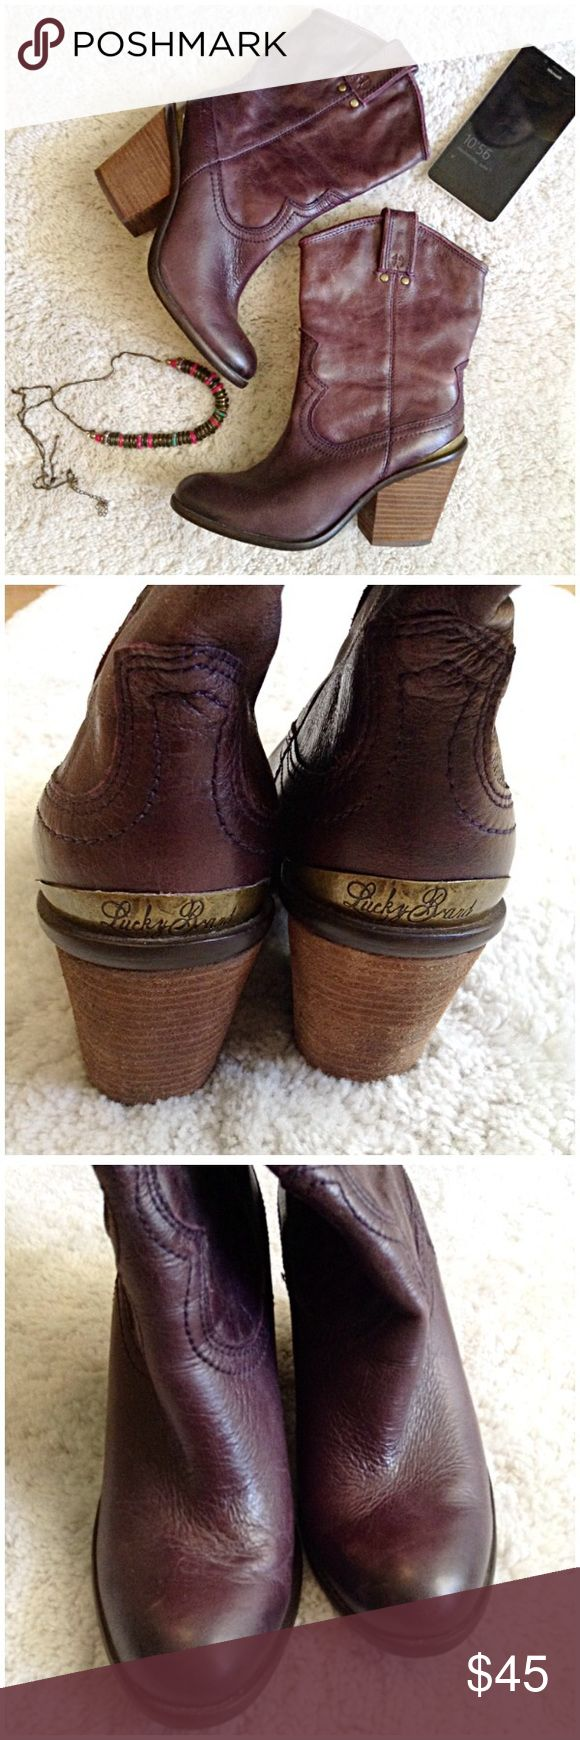 Lucky Brand Purple Leather Boho Cowboy Heel Boots Lucky Brand Purple Leather Boho Cowboy Heel Boots. Size 7. Used, Great Condition. Worn both inside/outside about 8 times. Upper is 100% leather. Lining of boot is Manmade. Measurements: Heel is 4 inches. Feel free to ask questions. Bundles & Offers Welcomed. 🚫NO TRADES🚫 Lucky Brand Shoes Heeled Boots